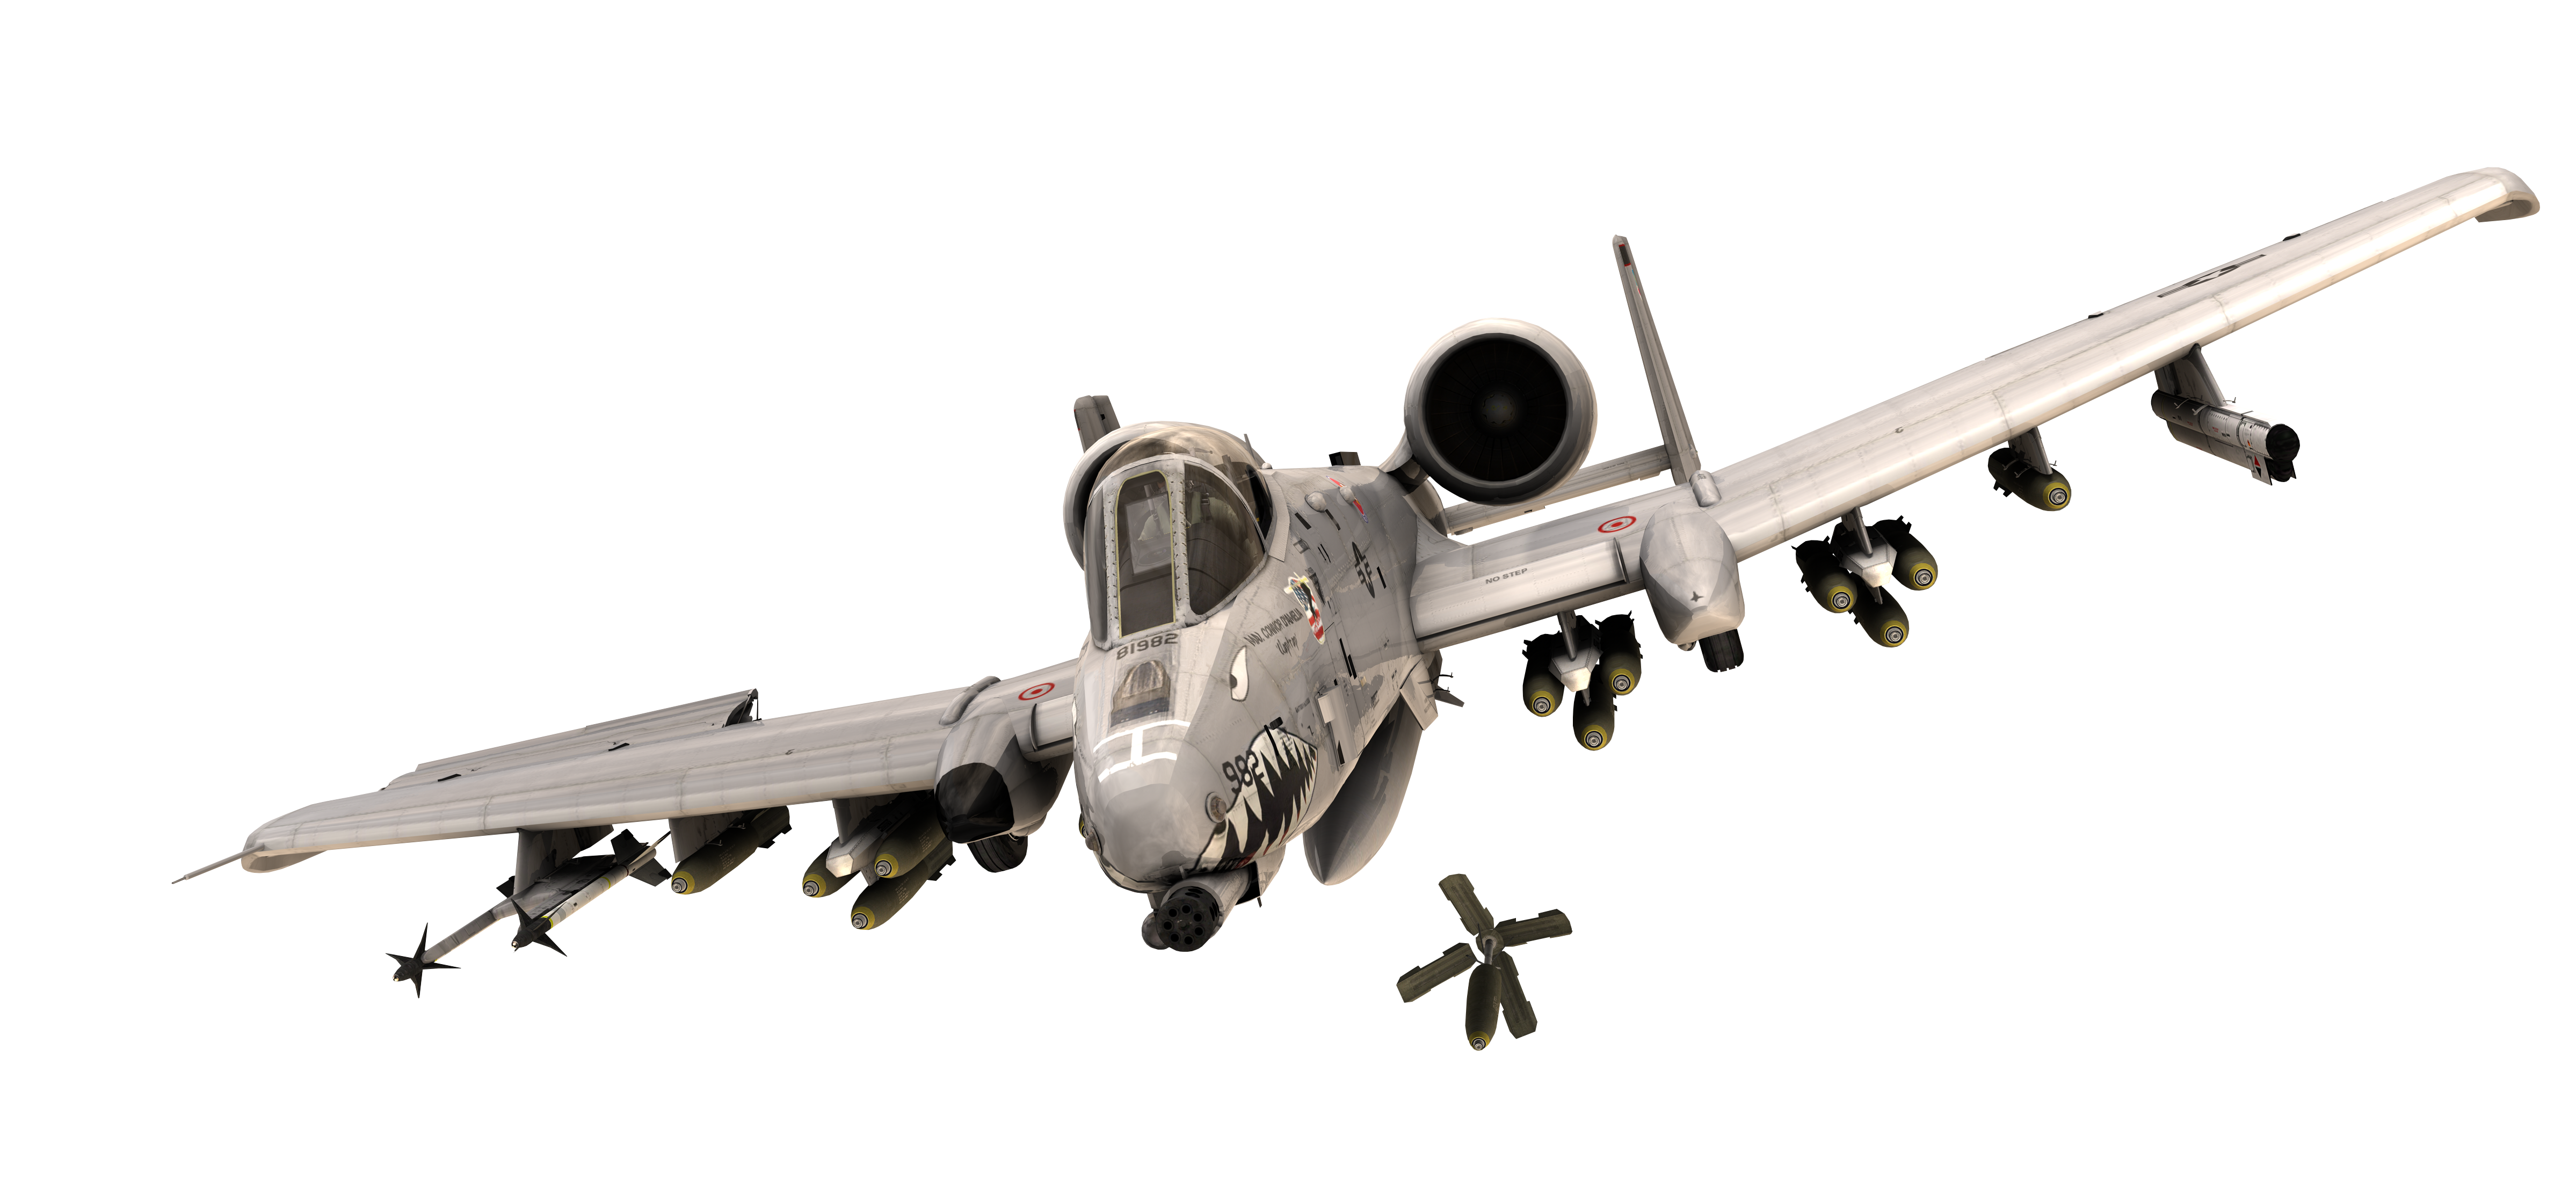 Fairchild Republic A-10 Thunderbolt II Airplane Aircraft General ... image black and white stock